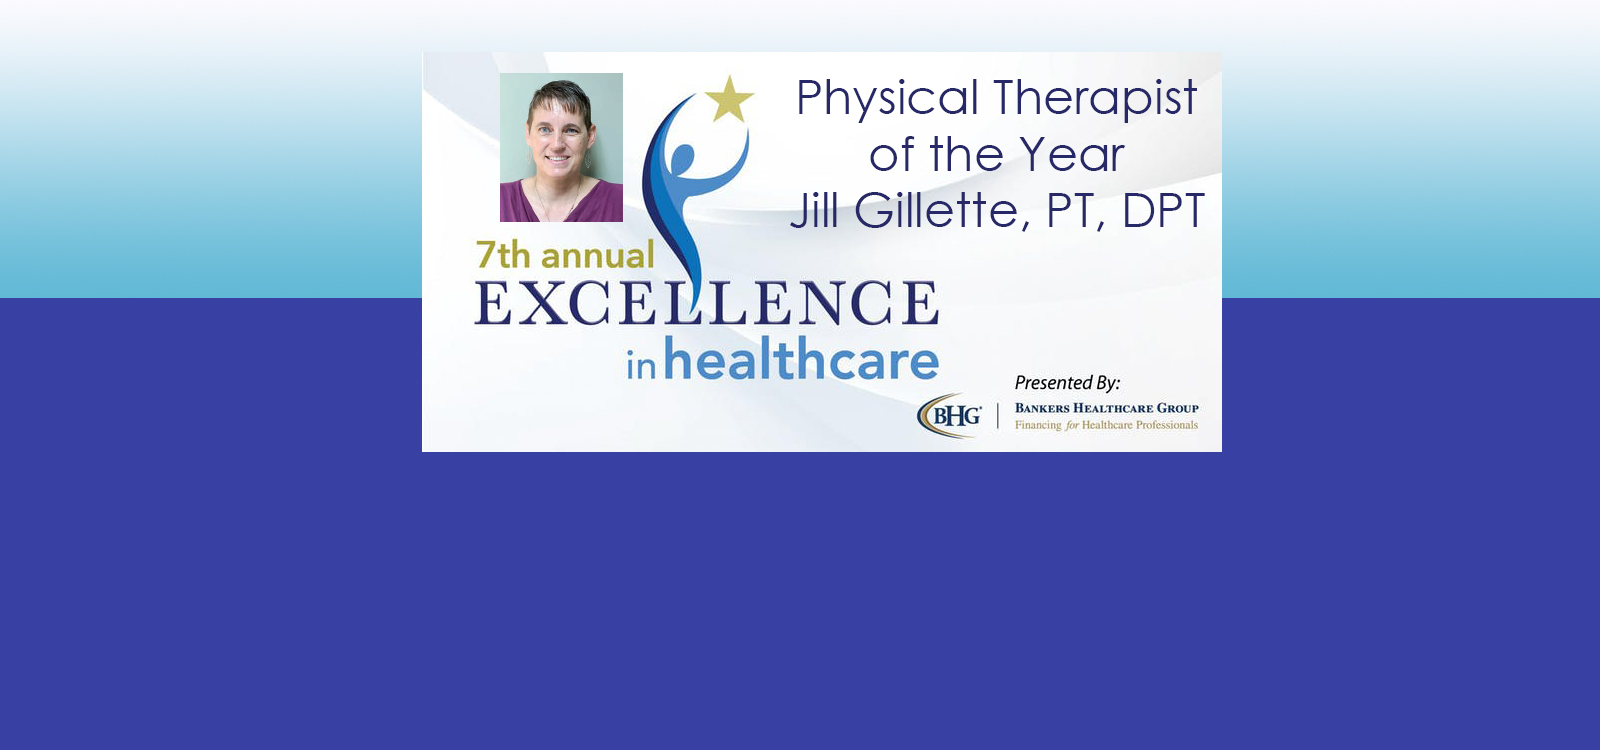 Physical Therapist Award